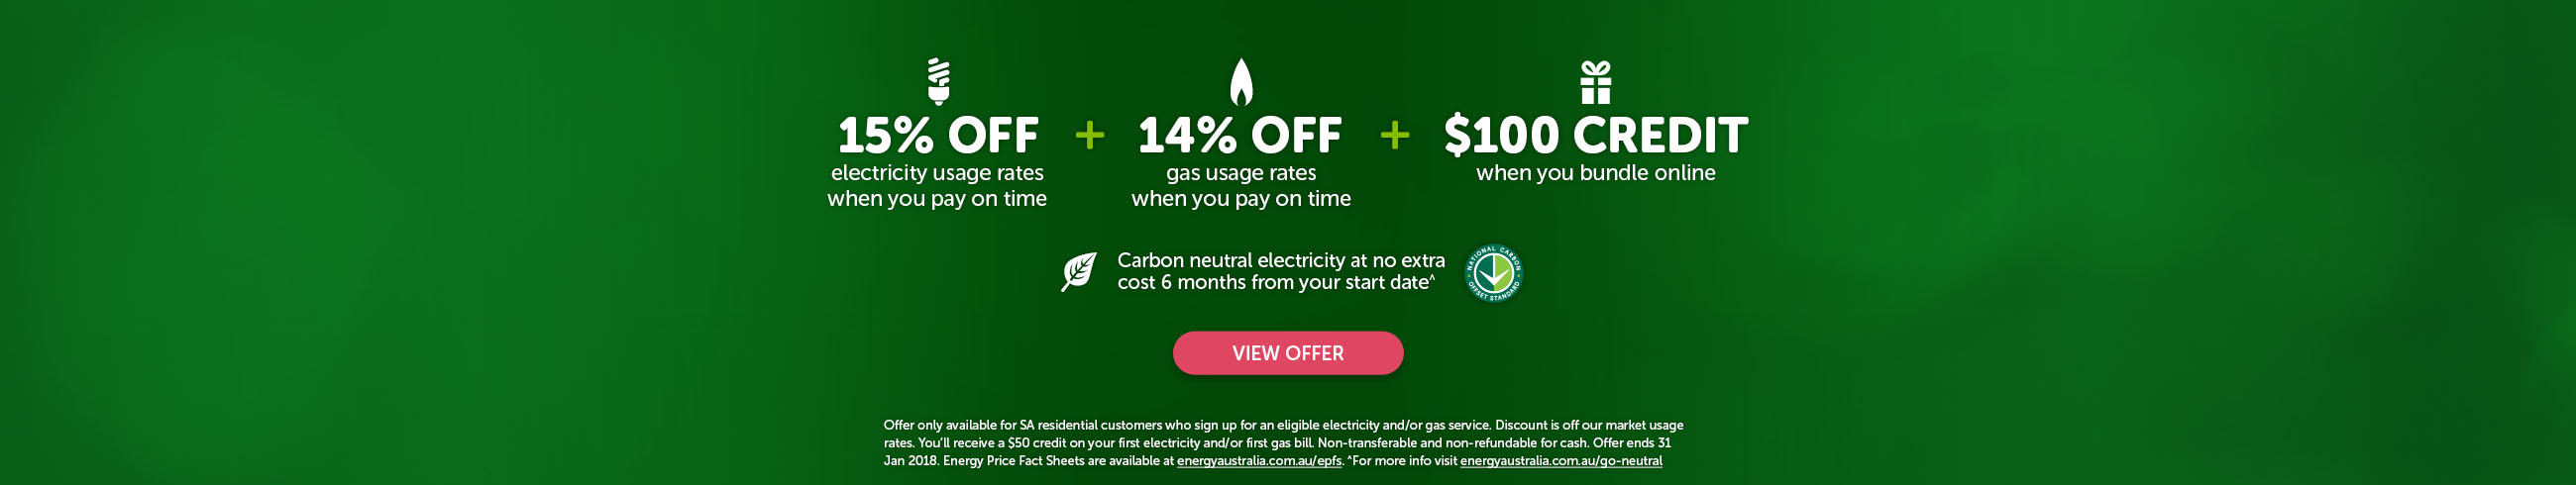 15% off electricity usage rates when you pay on time plus 14% off gas usage rates when you pay on time plus $100 credit when you bundle online. Carbon neutral electricity at no extra cost 6 months from your start date^